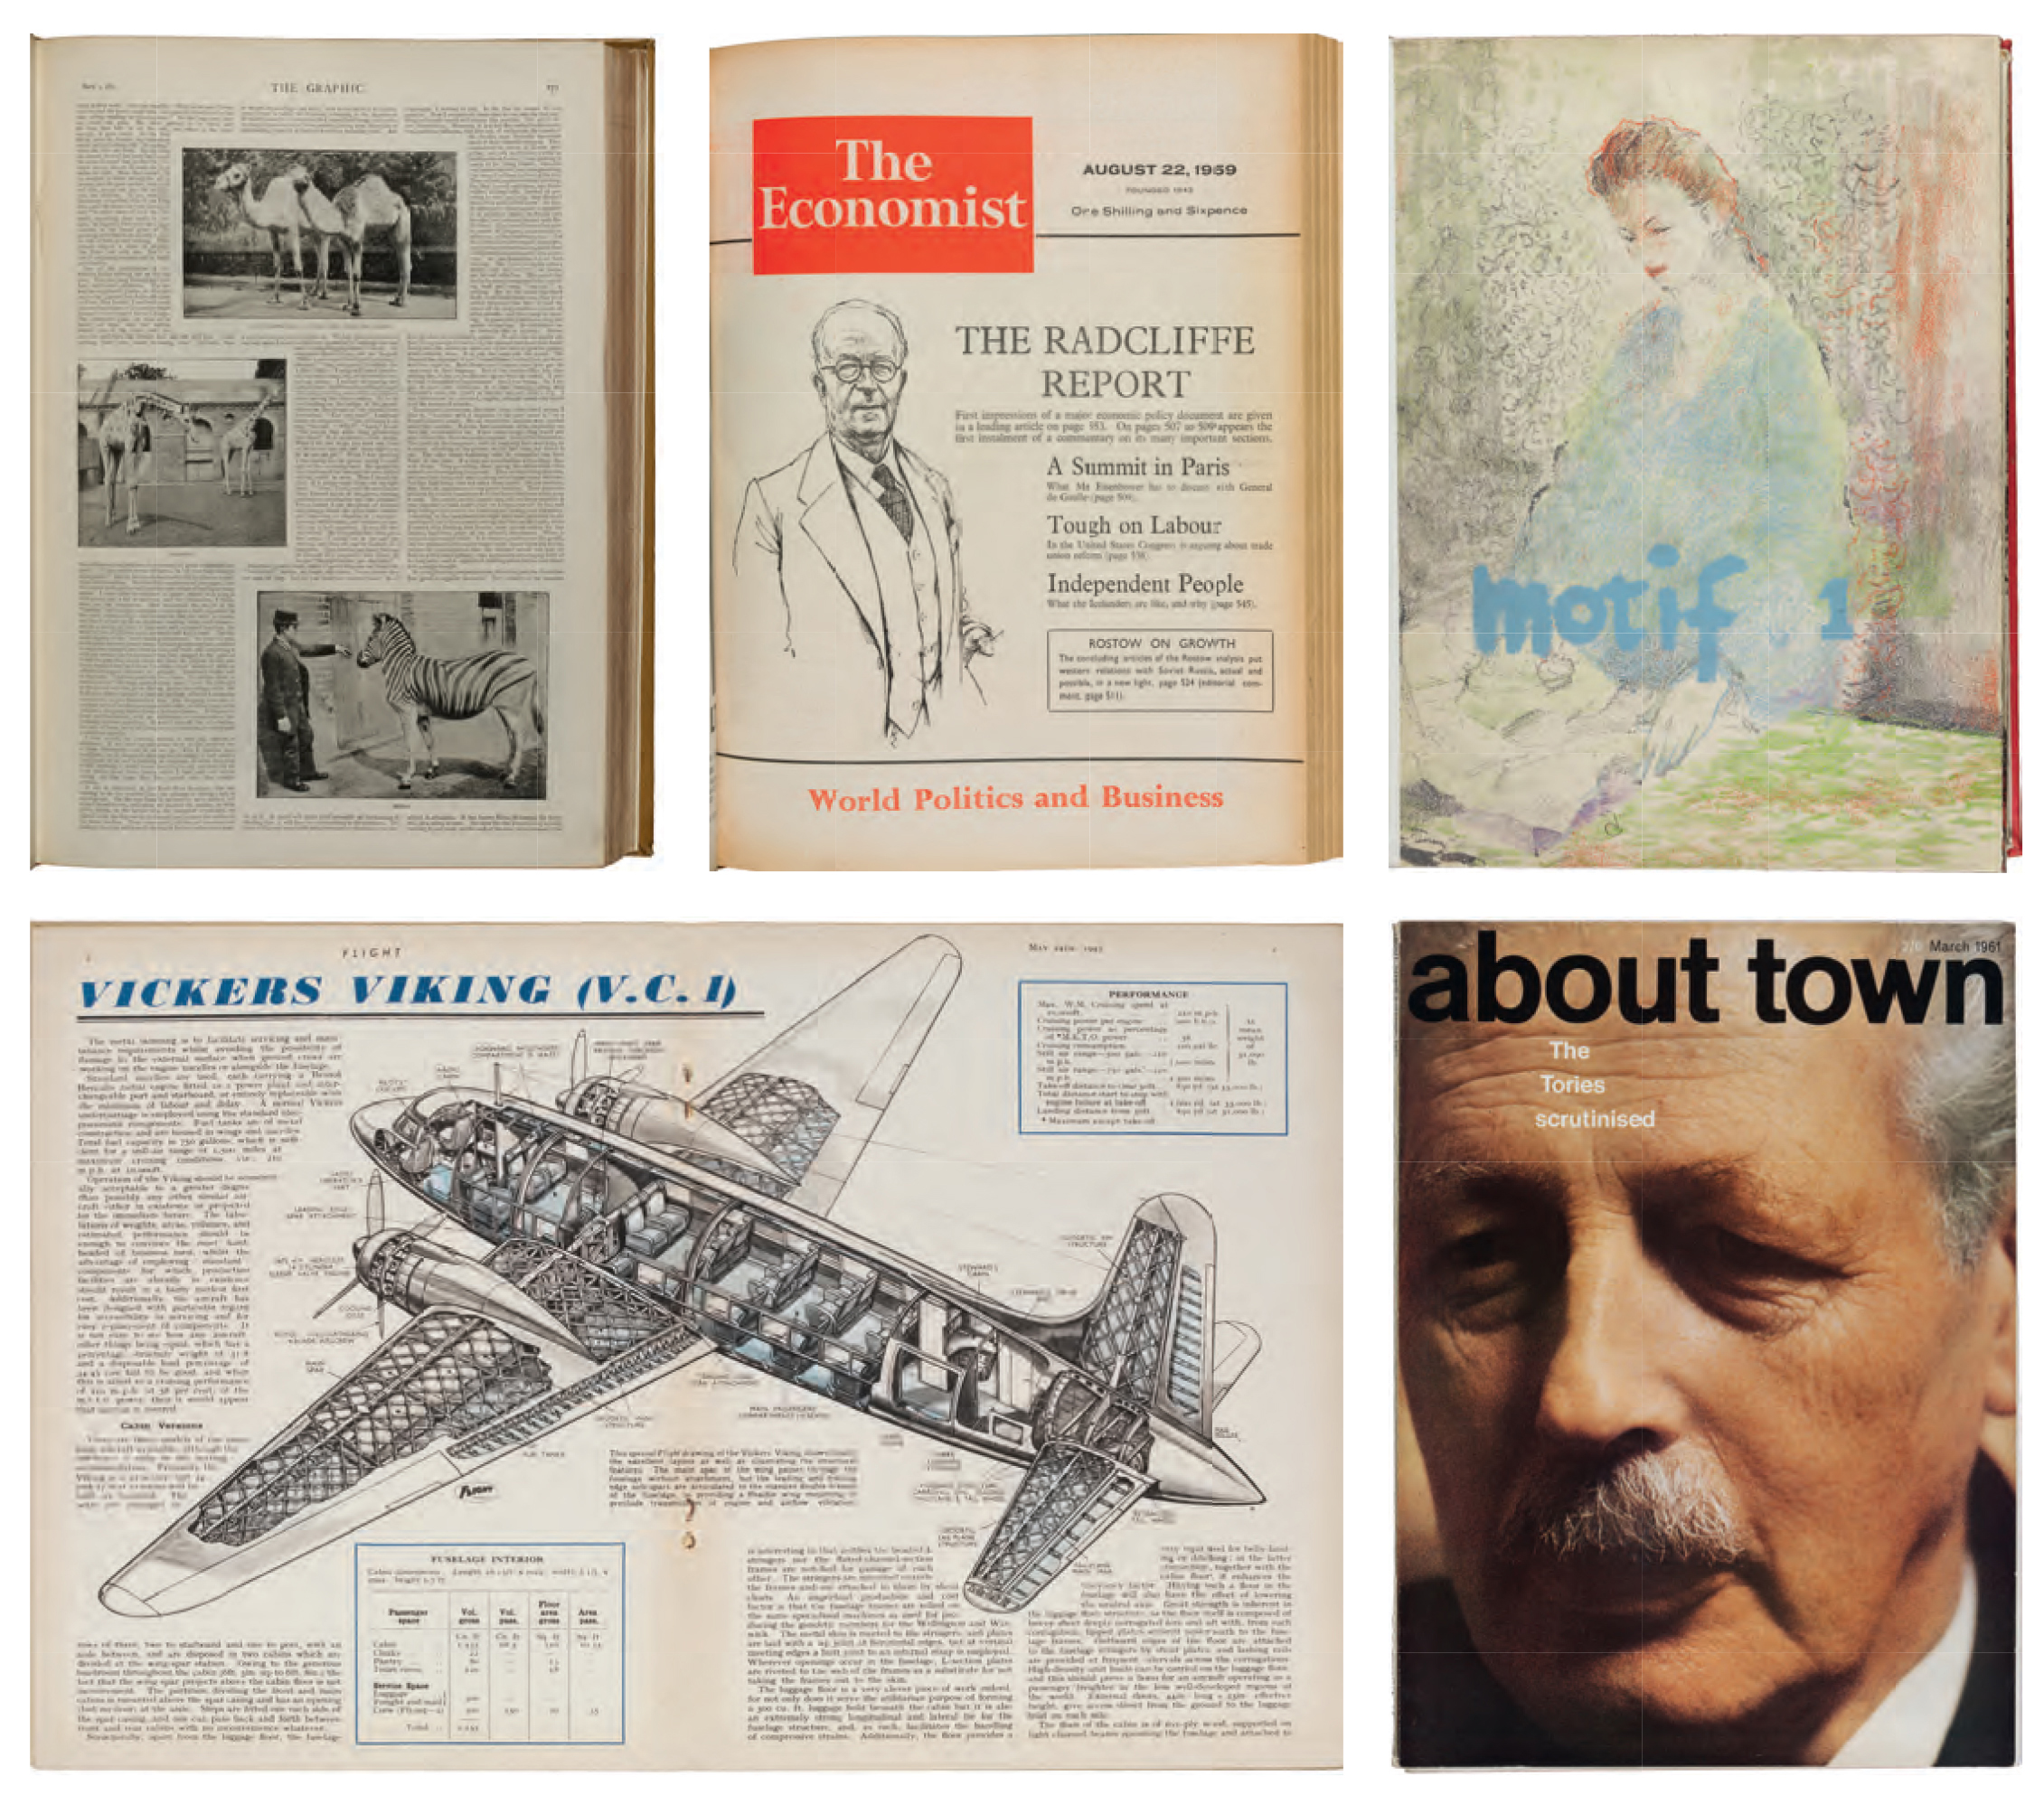 The Economist (August 22, 1959), designed by Reynolds Stone, published by Economist Newspaper Ltd; Motif (November 1958), drawing by Charles Mozley, published by Shenval Press; About Town (March 1961), Cornmarket Press; Flight (May 24, 1945), published by Flight Publishing